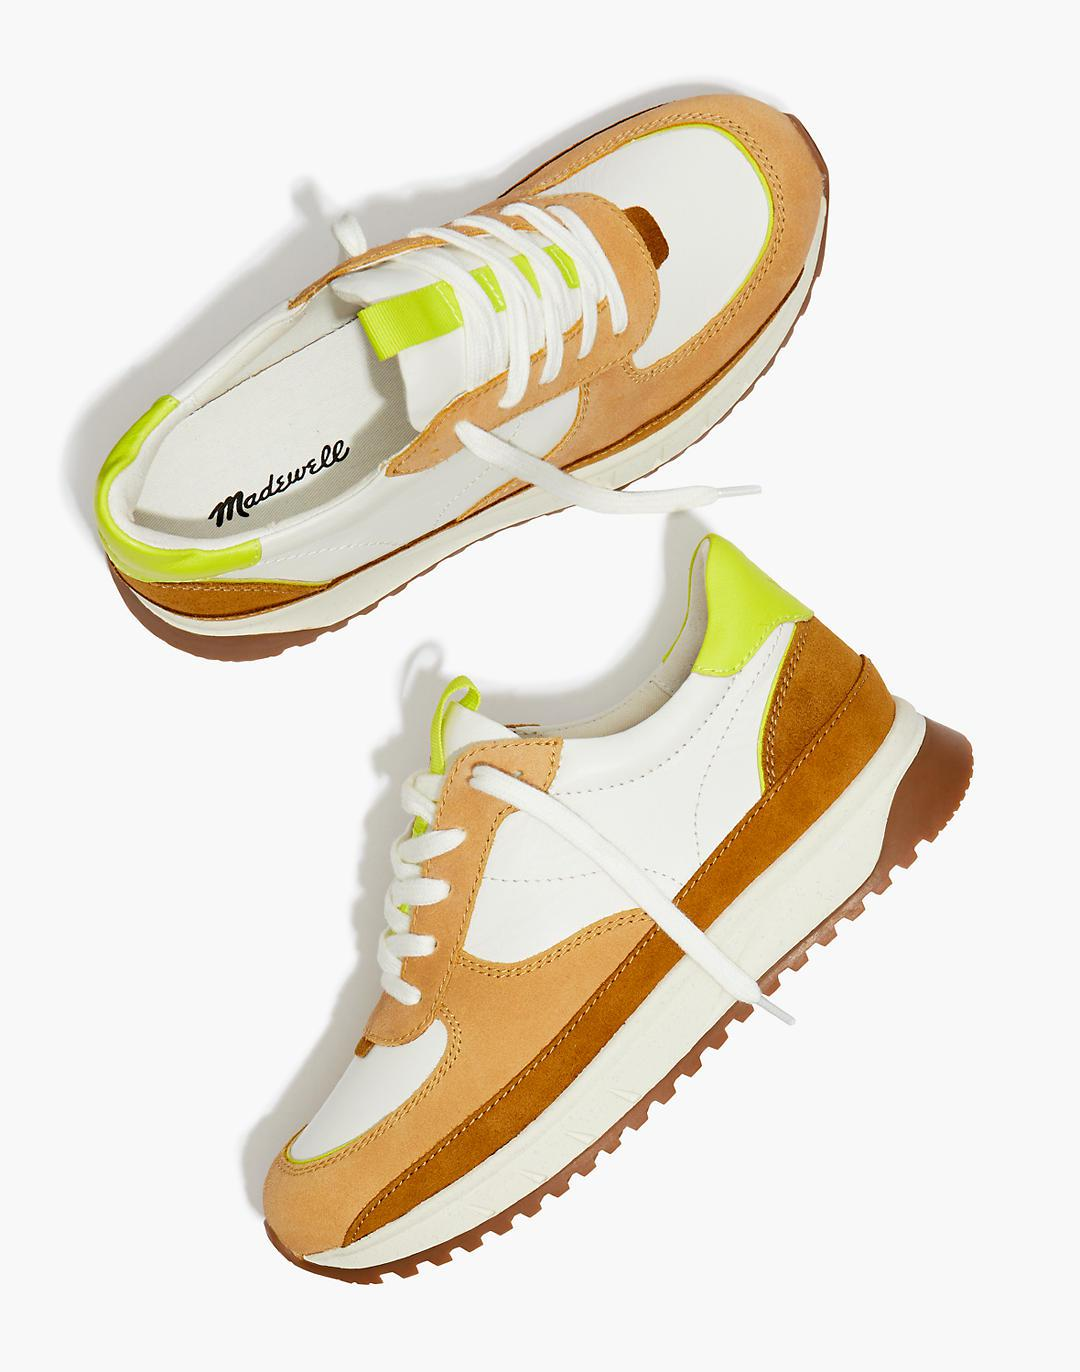 Kickoff Trainer Sneakers in Leather and Suede